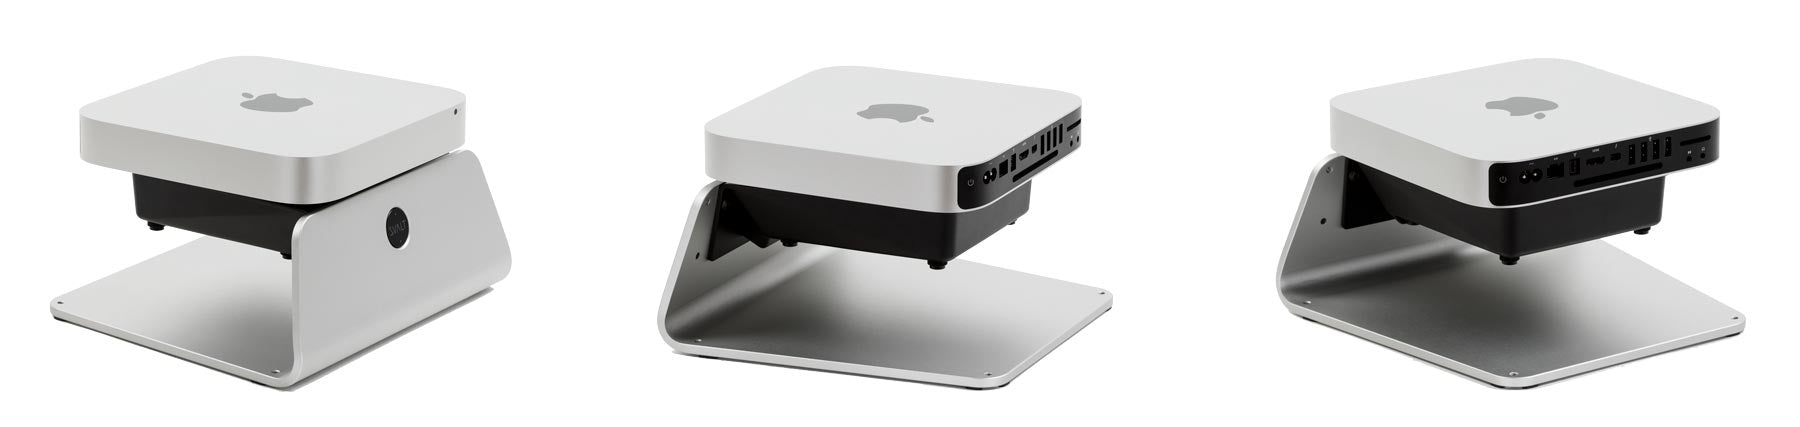 SVALT Cooling Stand model S Mini with Mac Mini